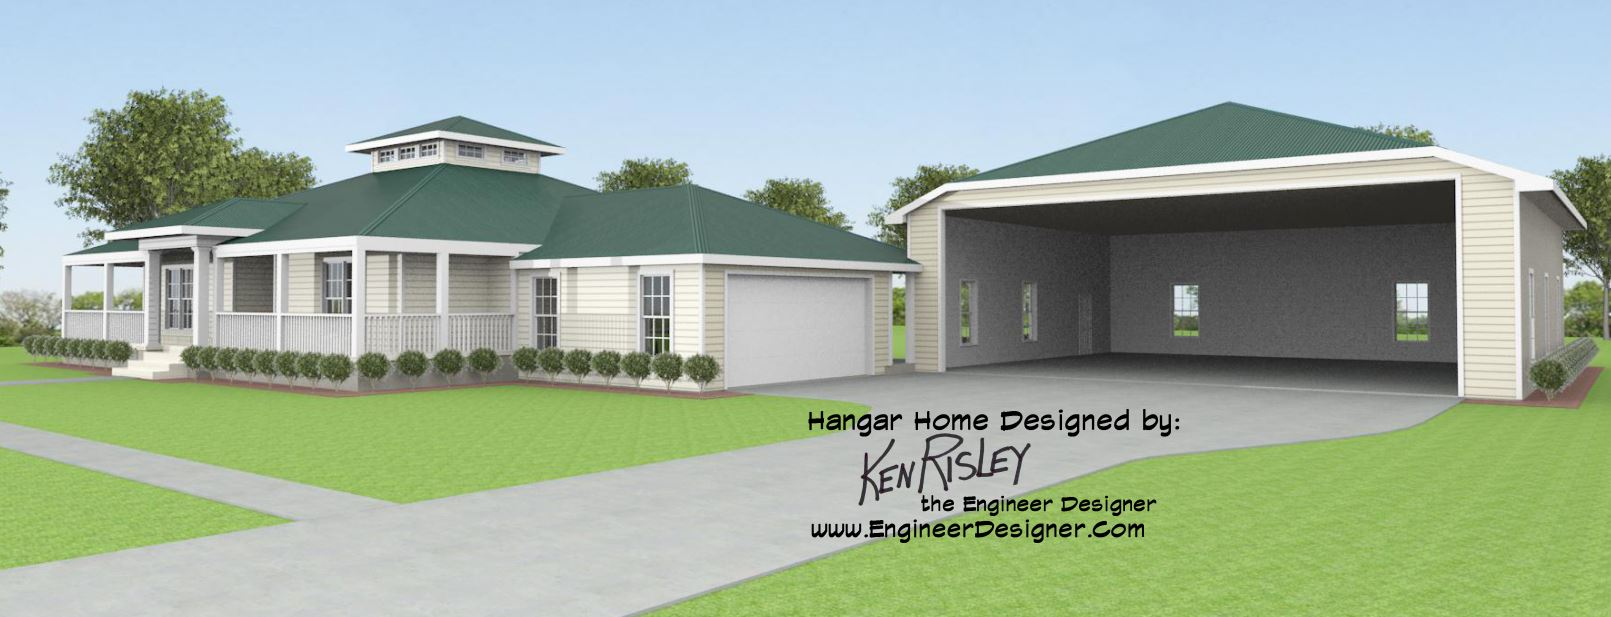 Texas hangar home designs home design for Hangar home plans